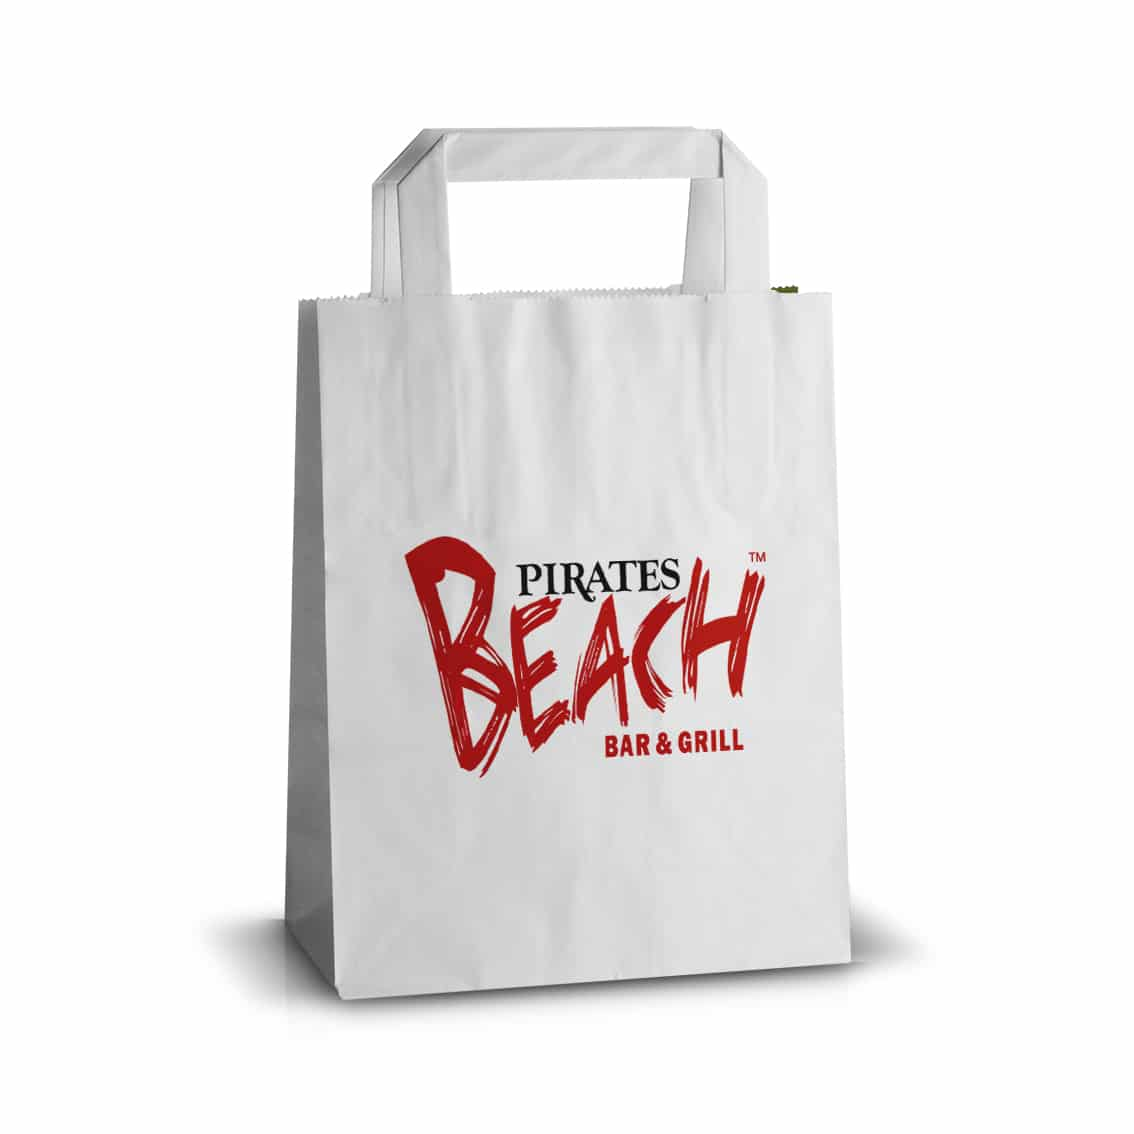 Pirates Beach printed carrier bag